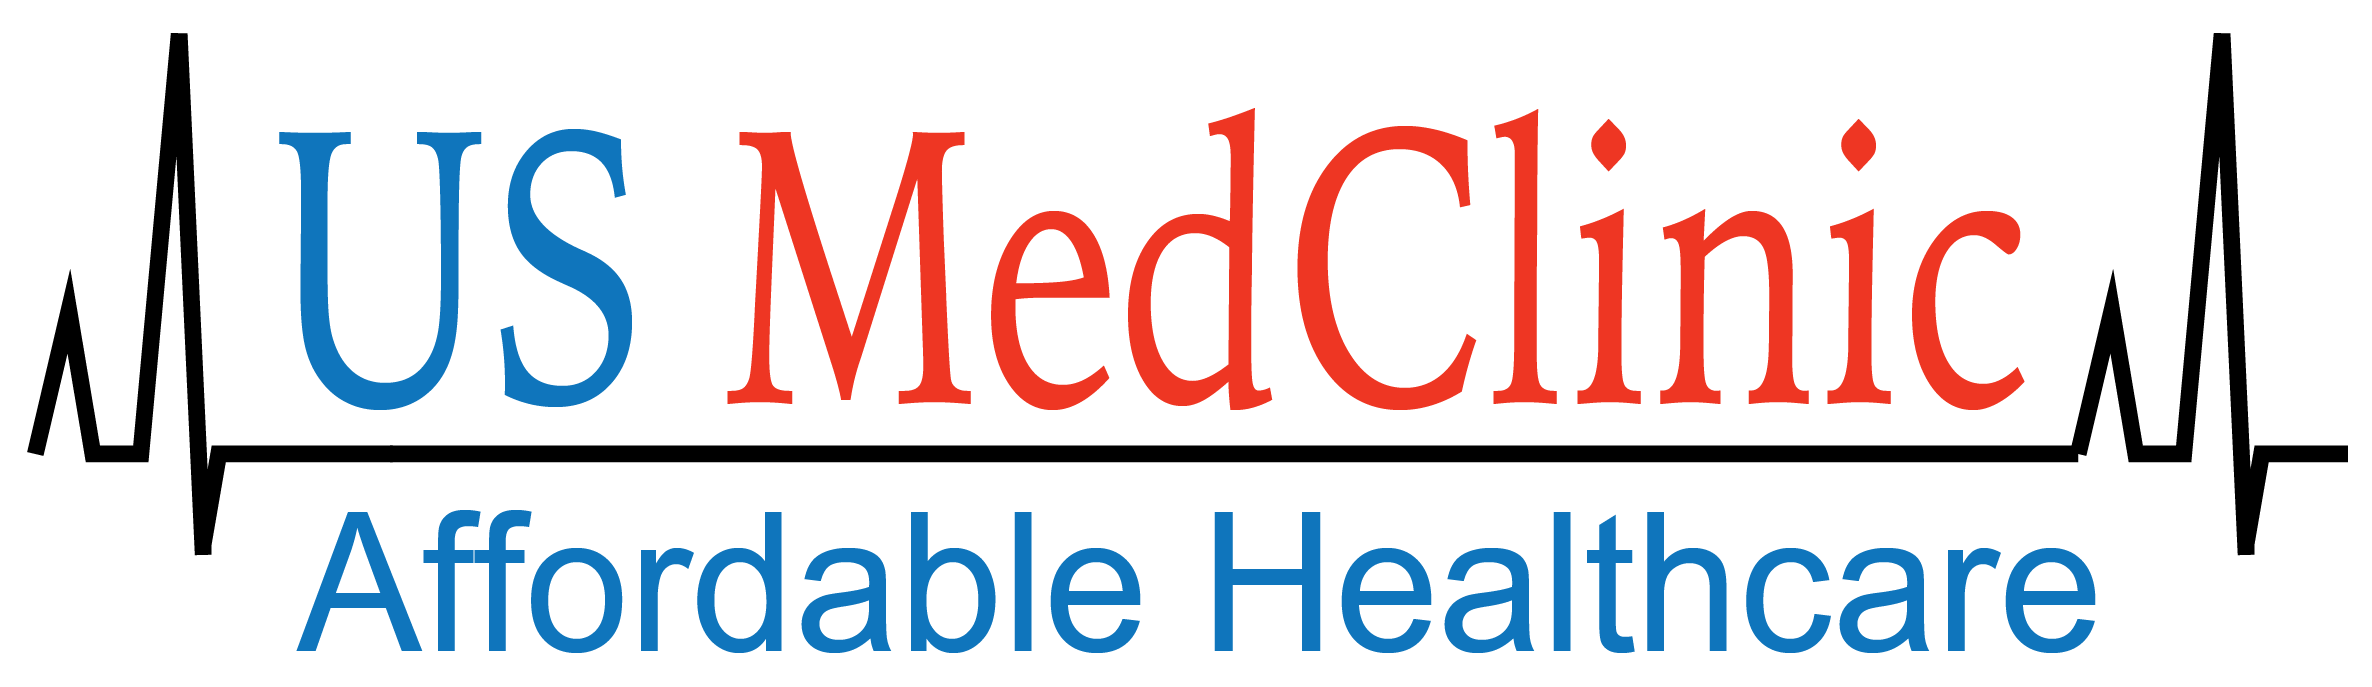 US MedClinic: Affordable Healthcare